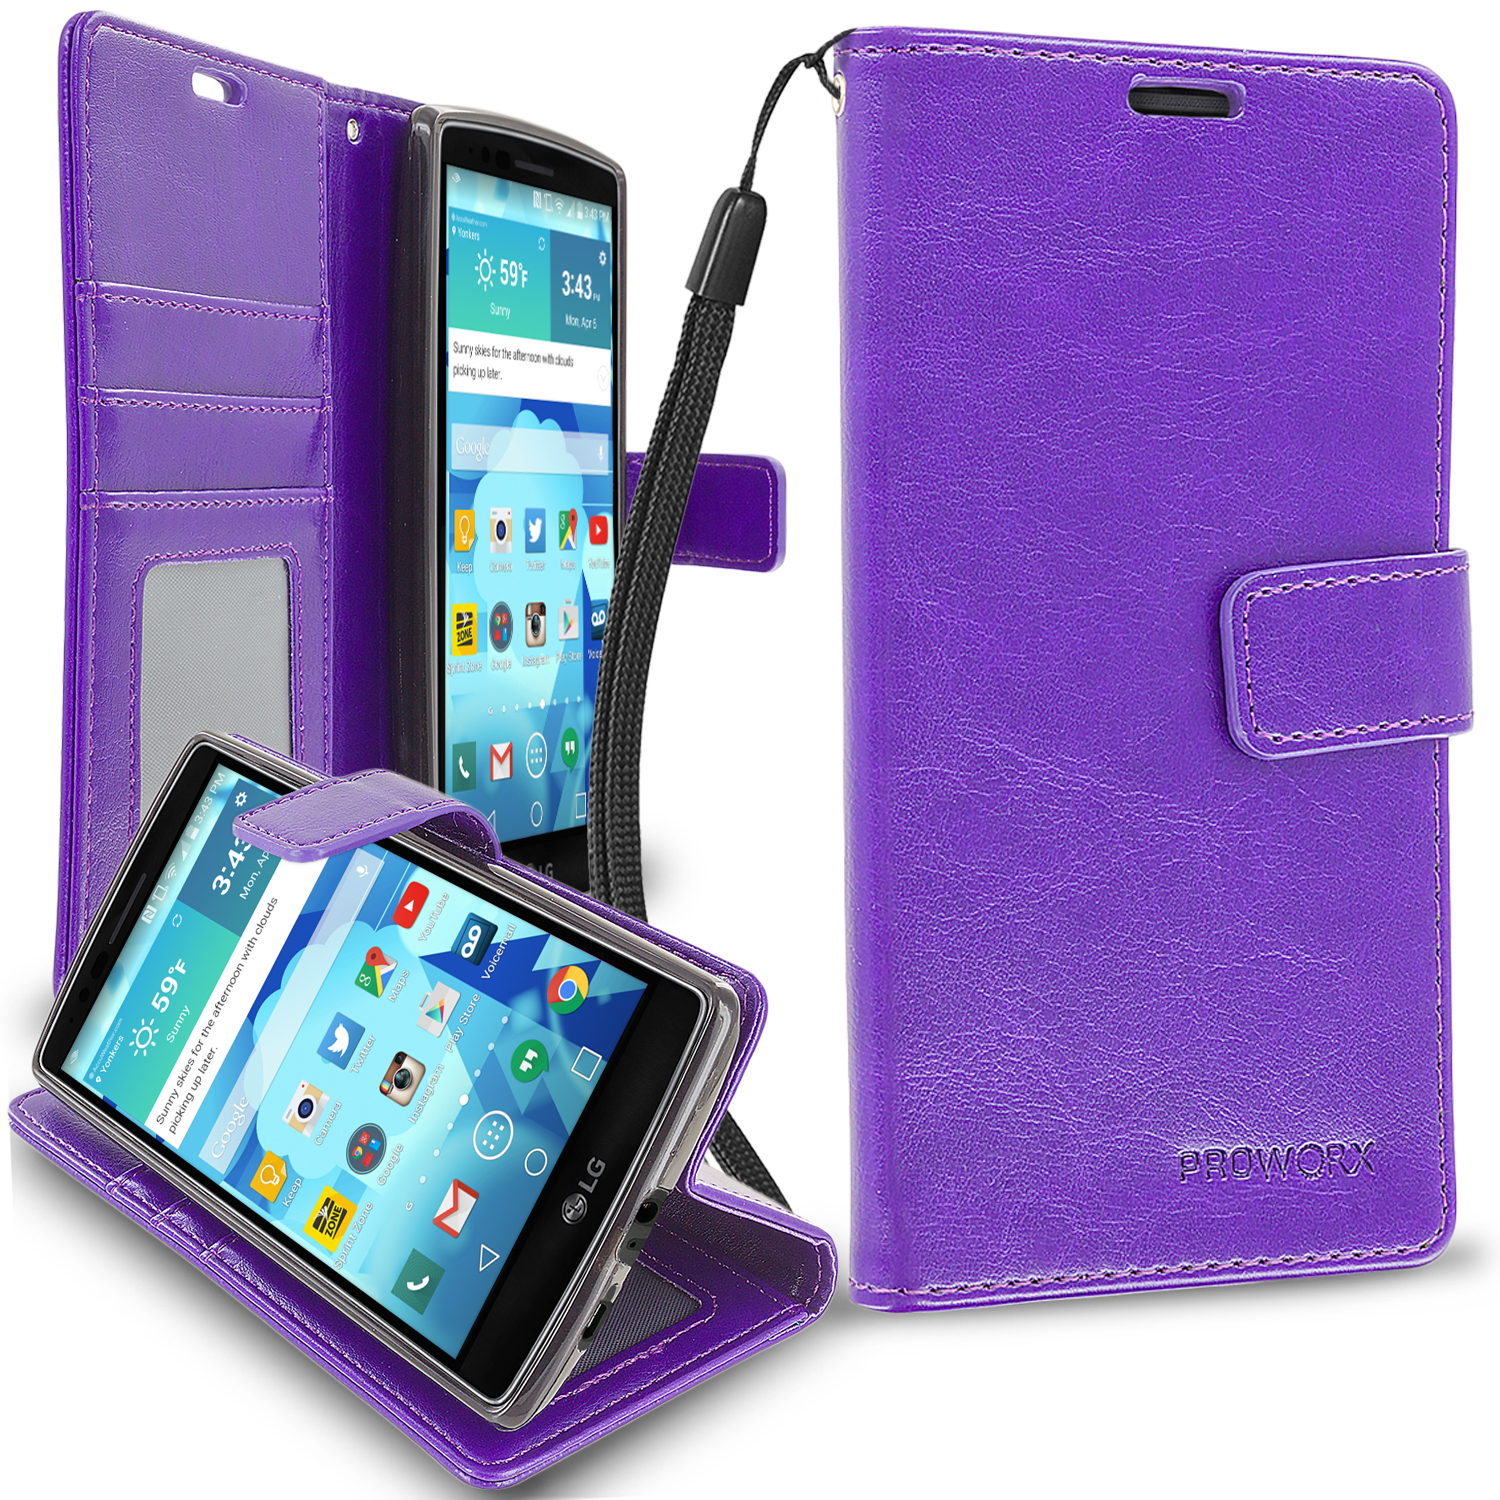 LG G Flex 2 Purple ProWorx Wallet Case Luxury PU Leather Case Cover With Card Slots & Stand